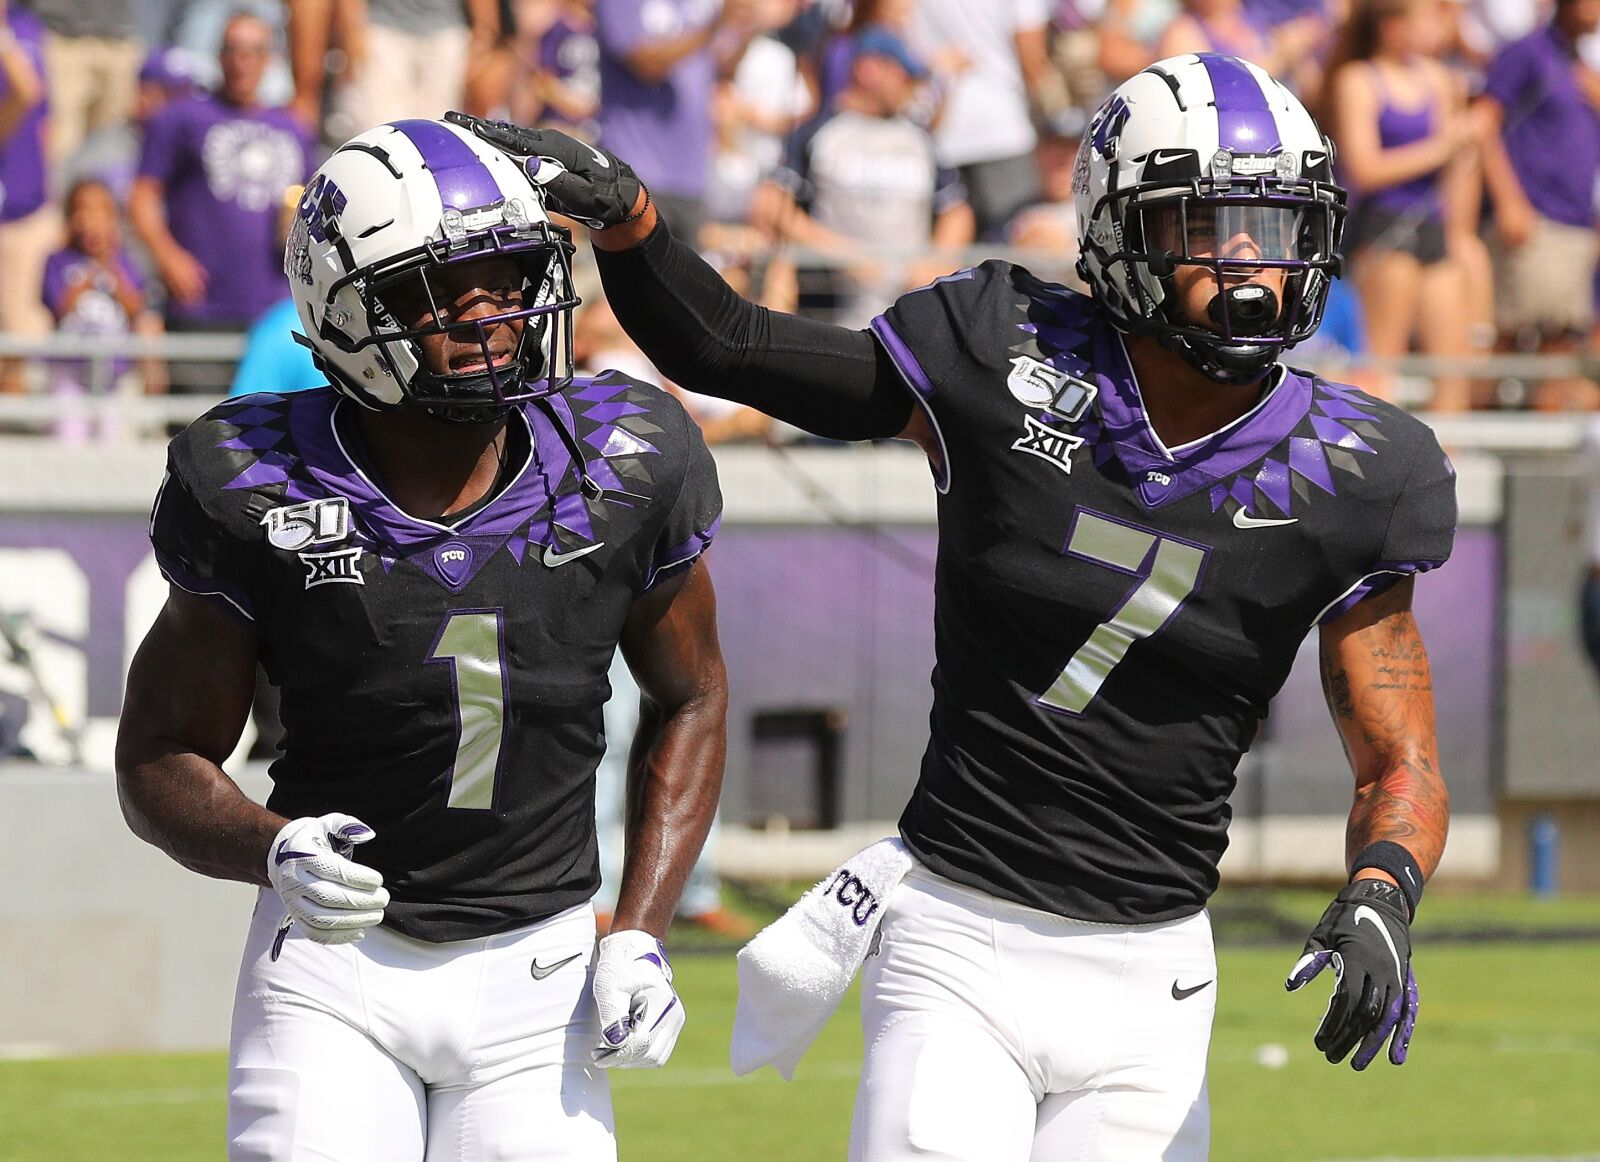 New Orleans Saints first-round pick will likely come from TCU